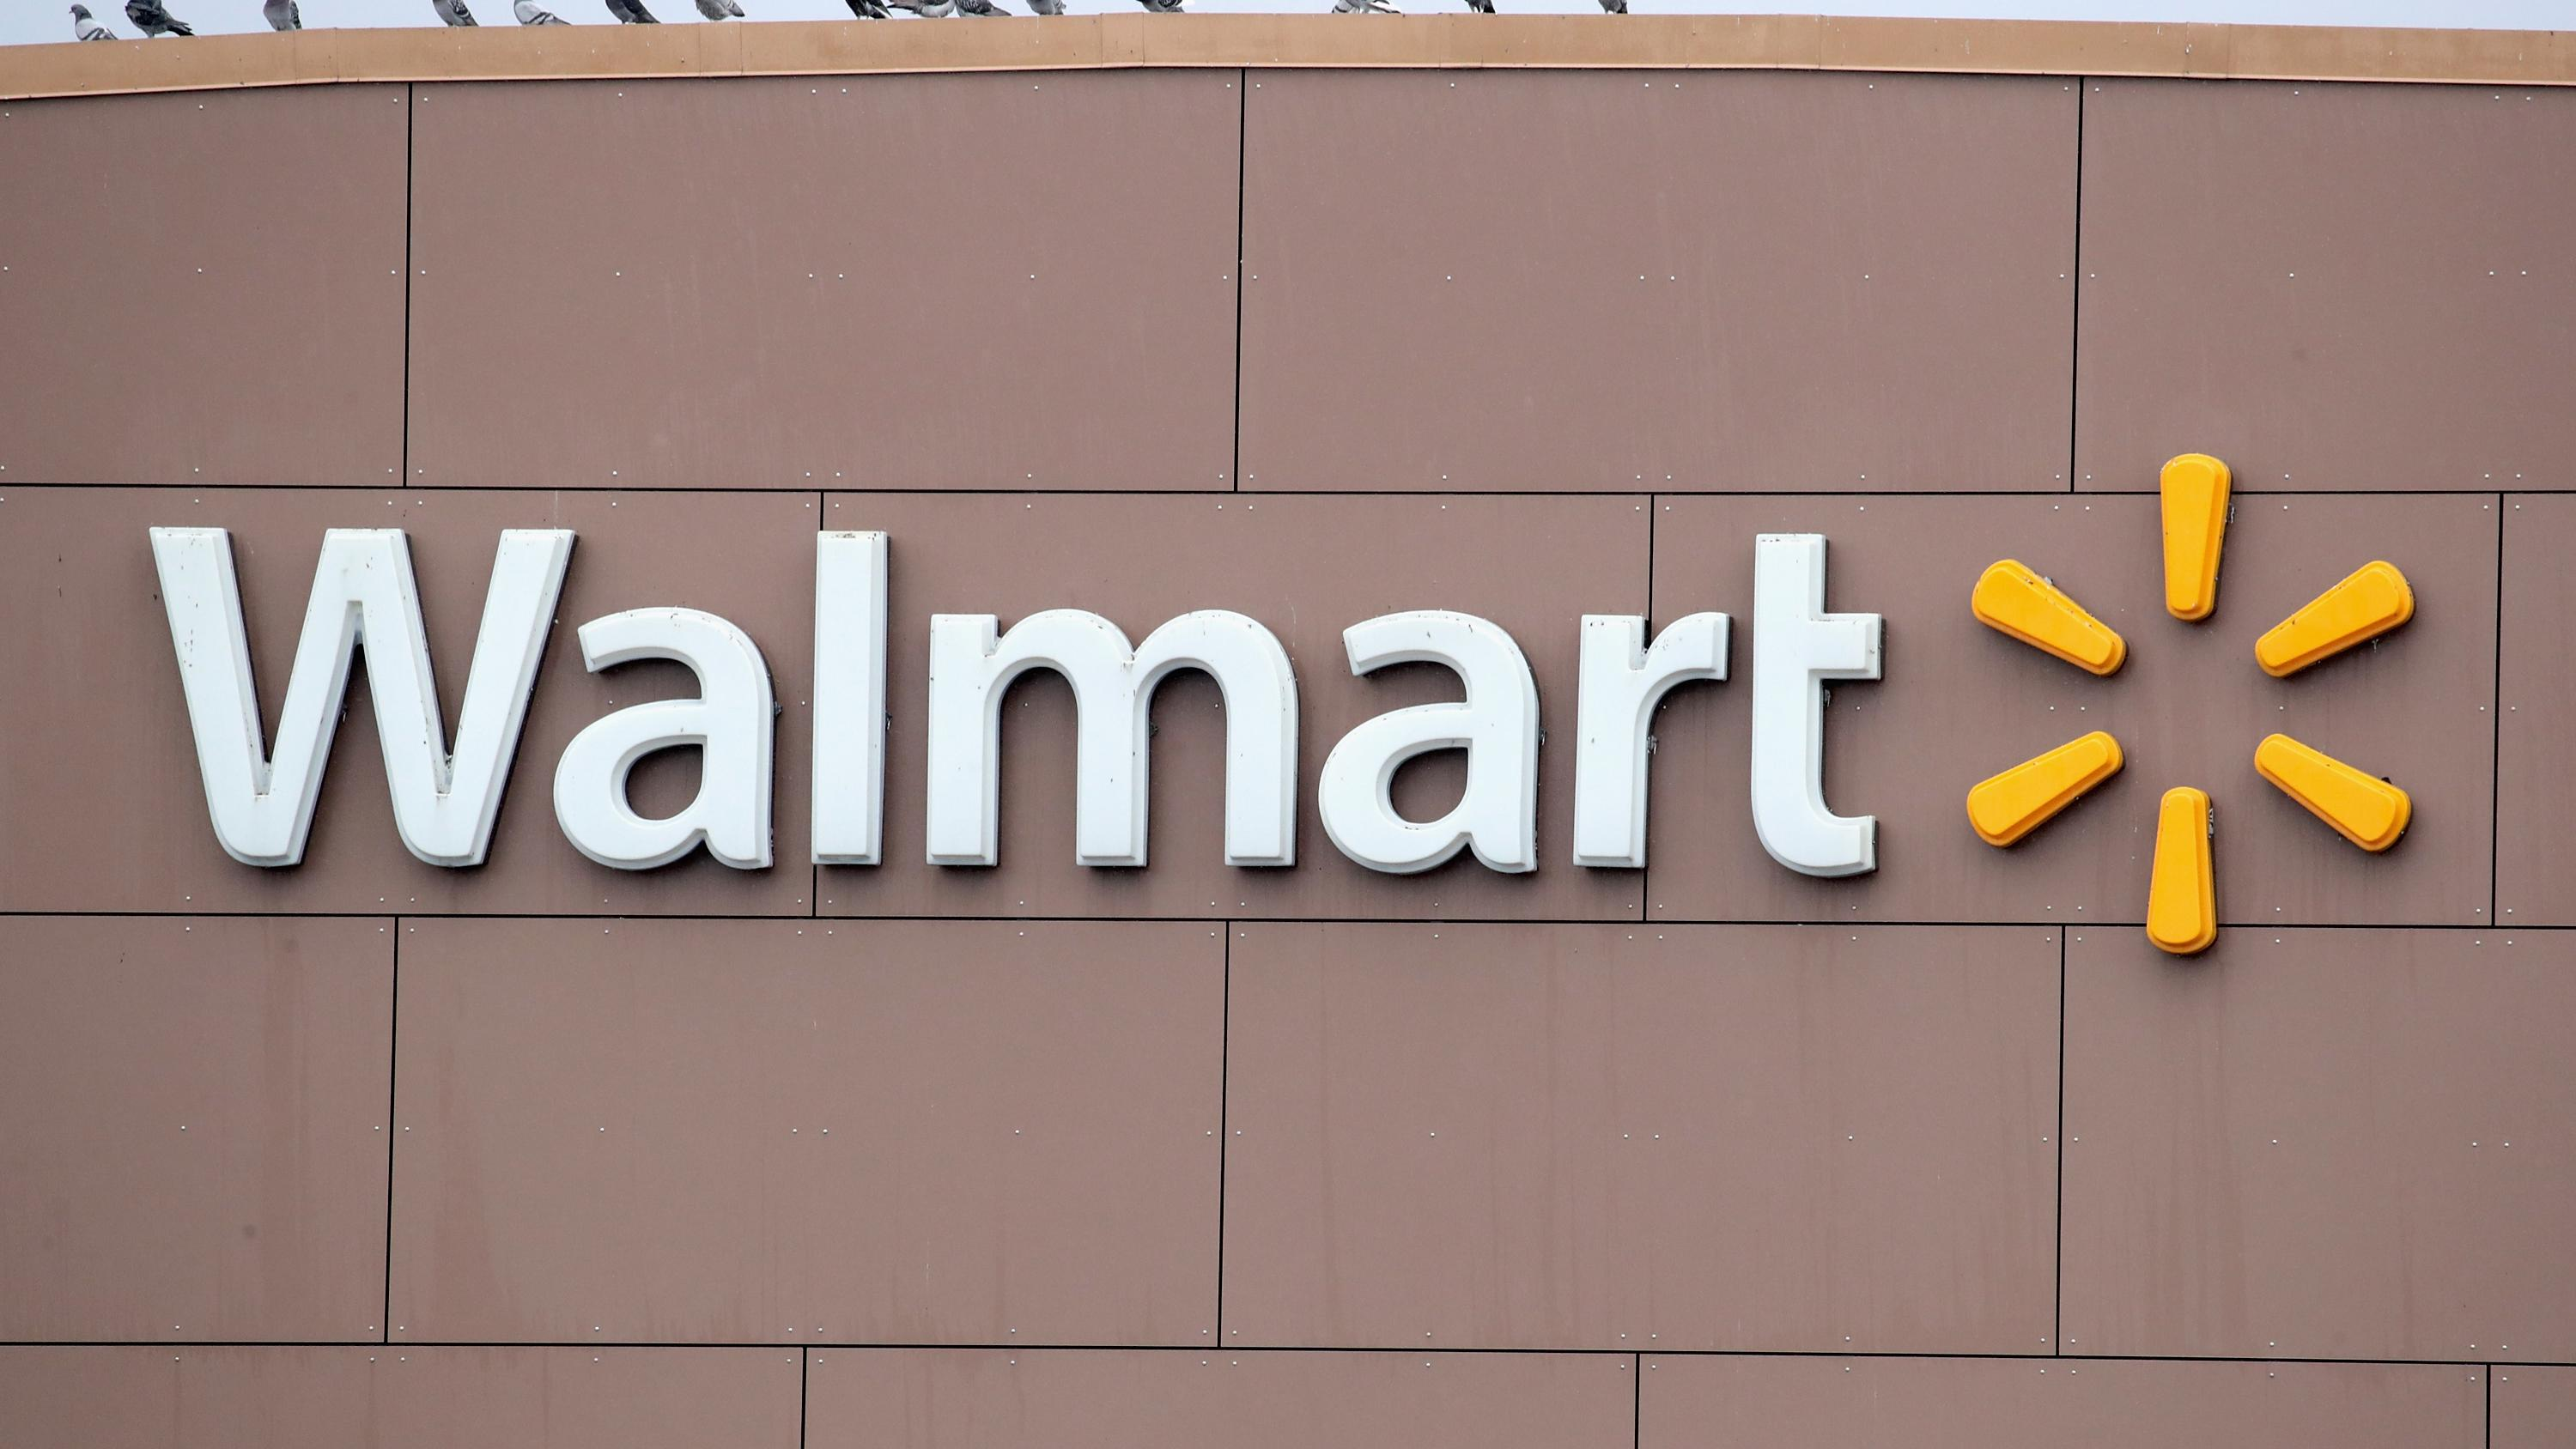 walmart is the nations largest business Nation's smallest walmart to open in atlanta  walmart, the world's largest retailer, is gearing up to open their smallest store  independent news that makes people smarter about business.